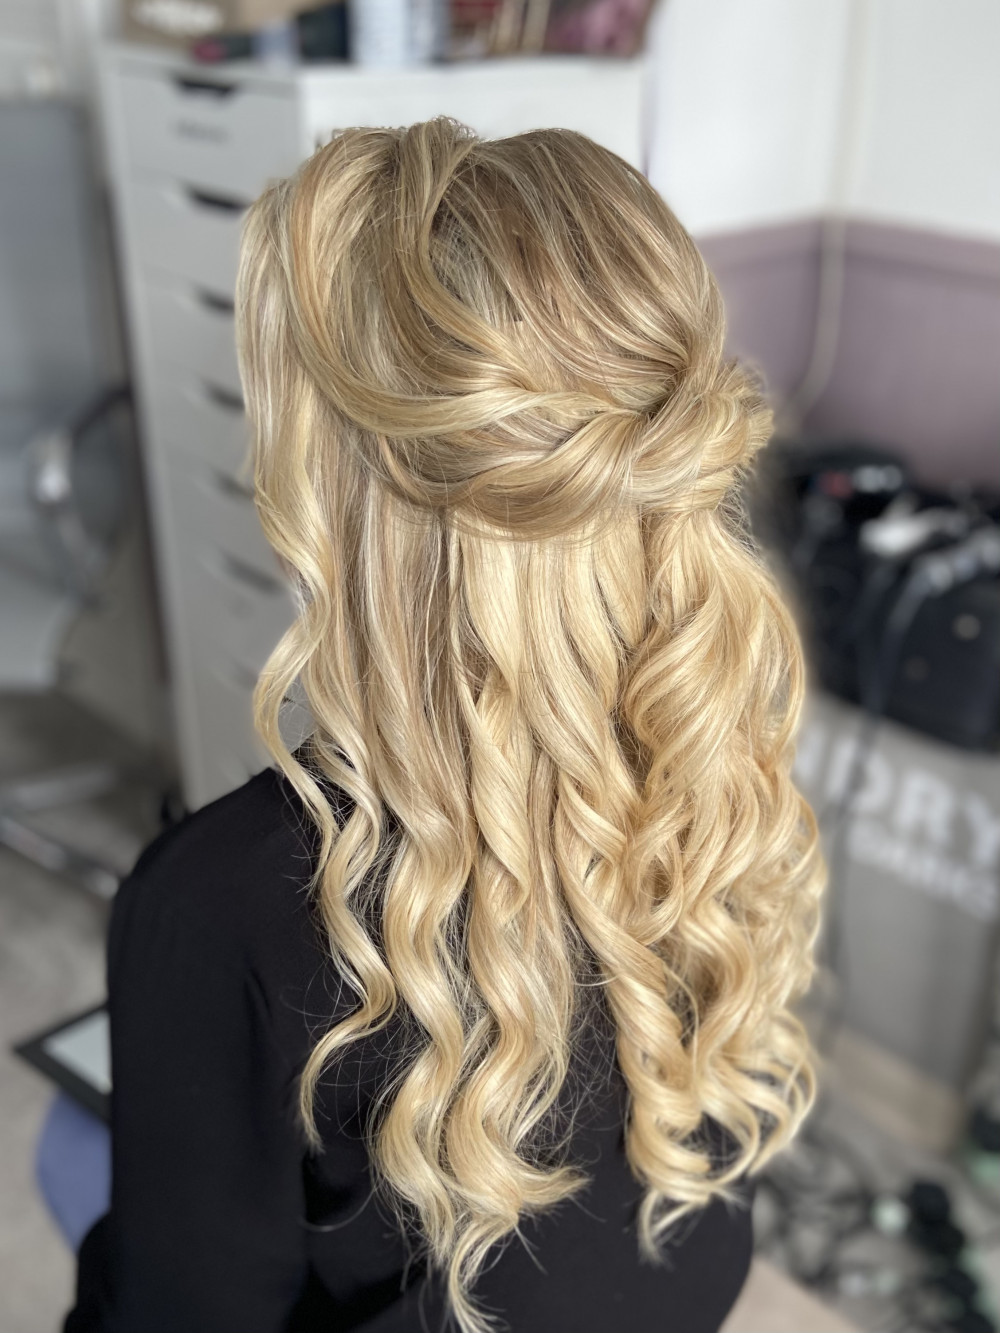 Half up with curls and curls - Make Me Bridal Artist: Jessica Makeup and Hairstyling. #halfuphair #curls #blonde #bridalhair #romantichairup #bridalhair #bridalhairstylist #softcurls #hampshirehair #surreyhair #twists